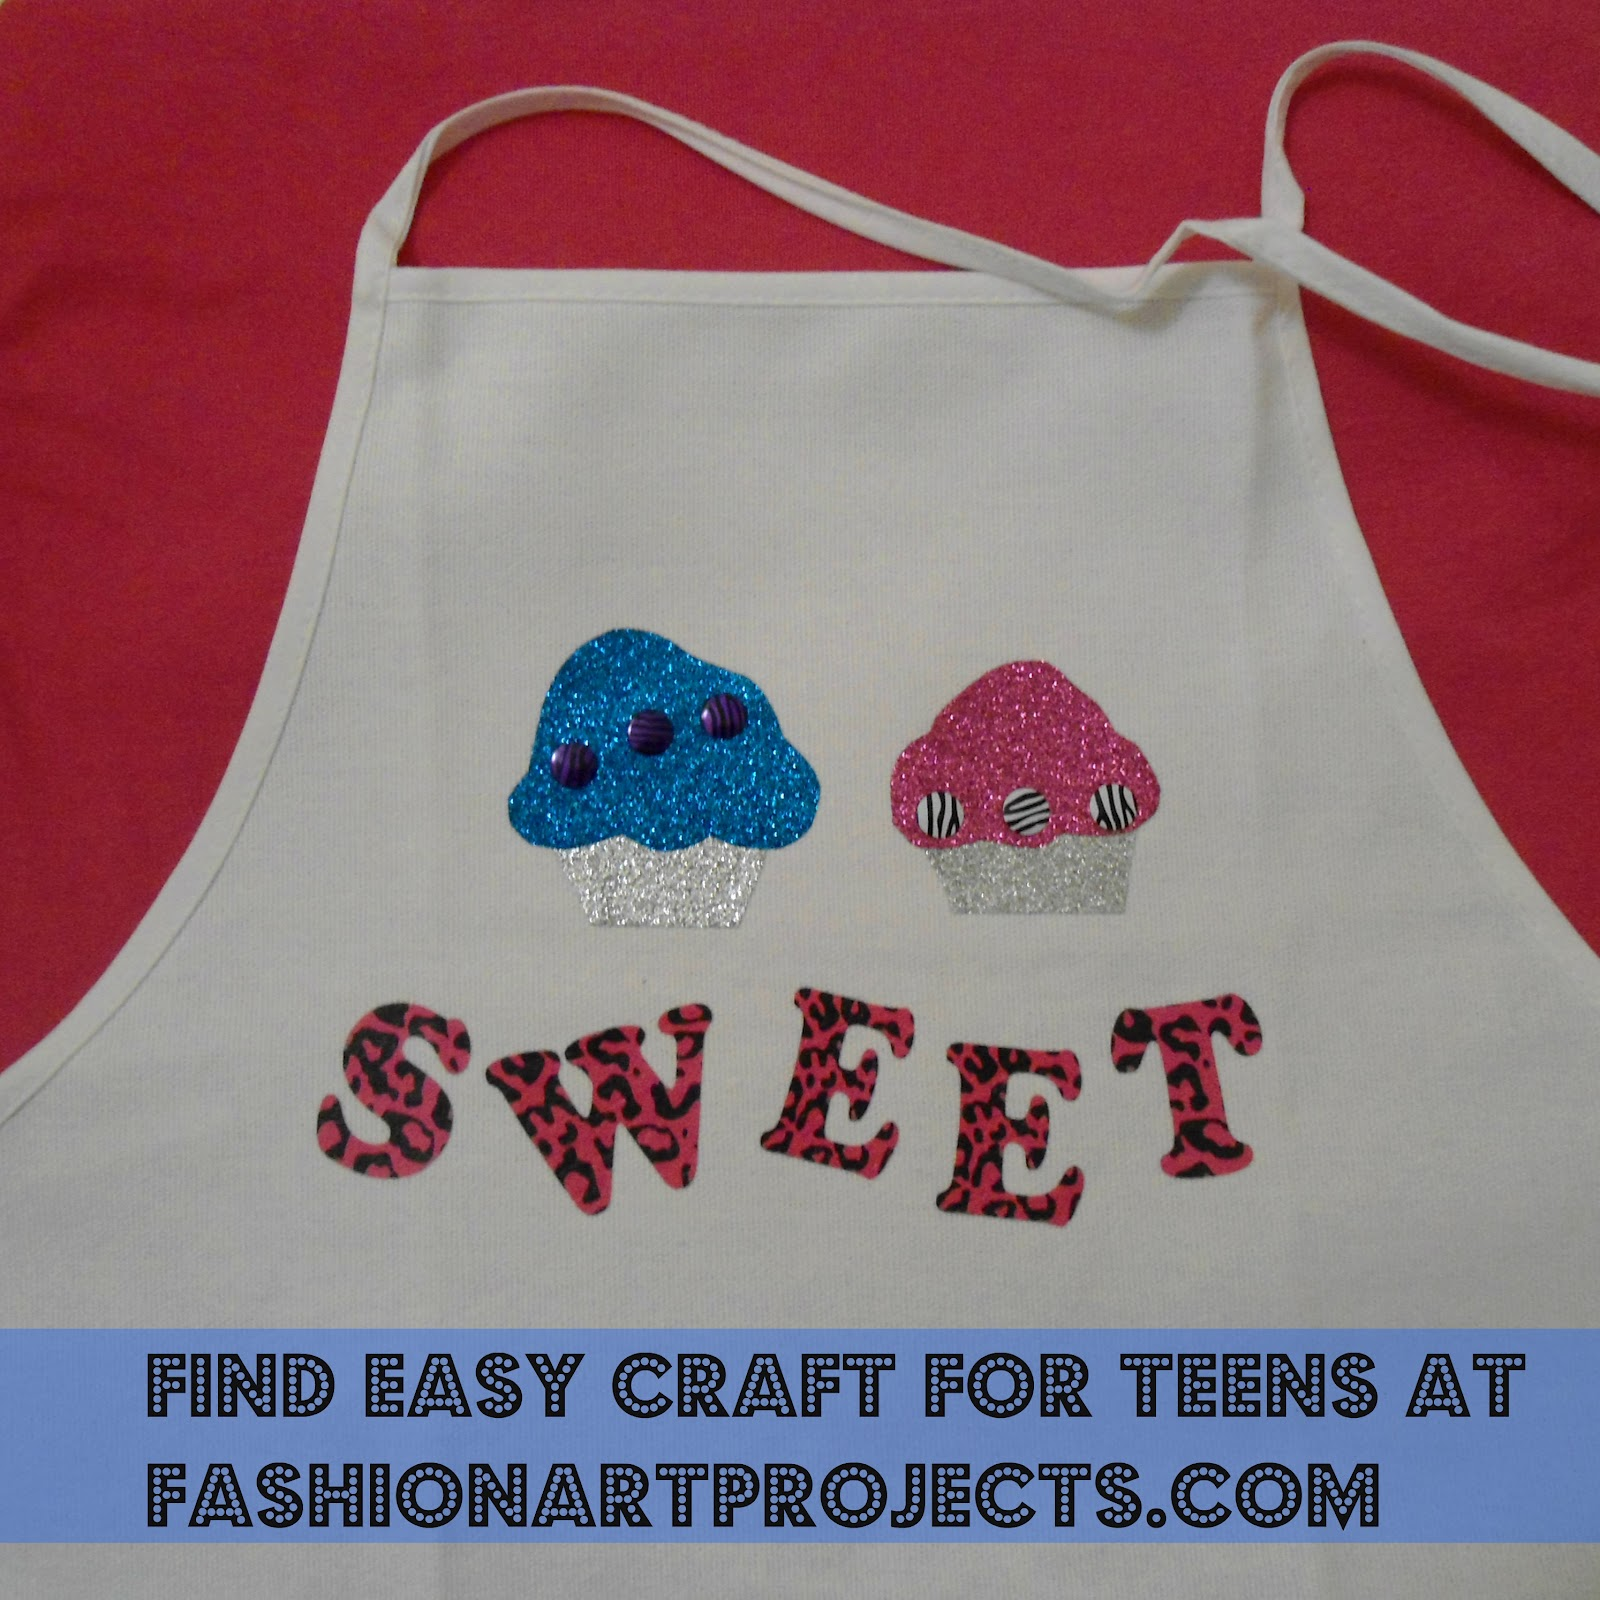 The projects featured use affordable fashion craft ...